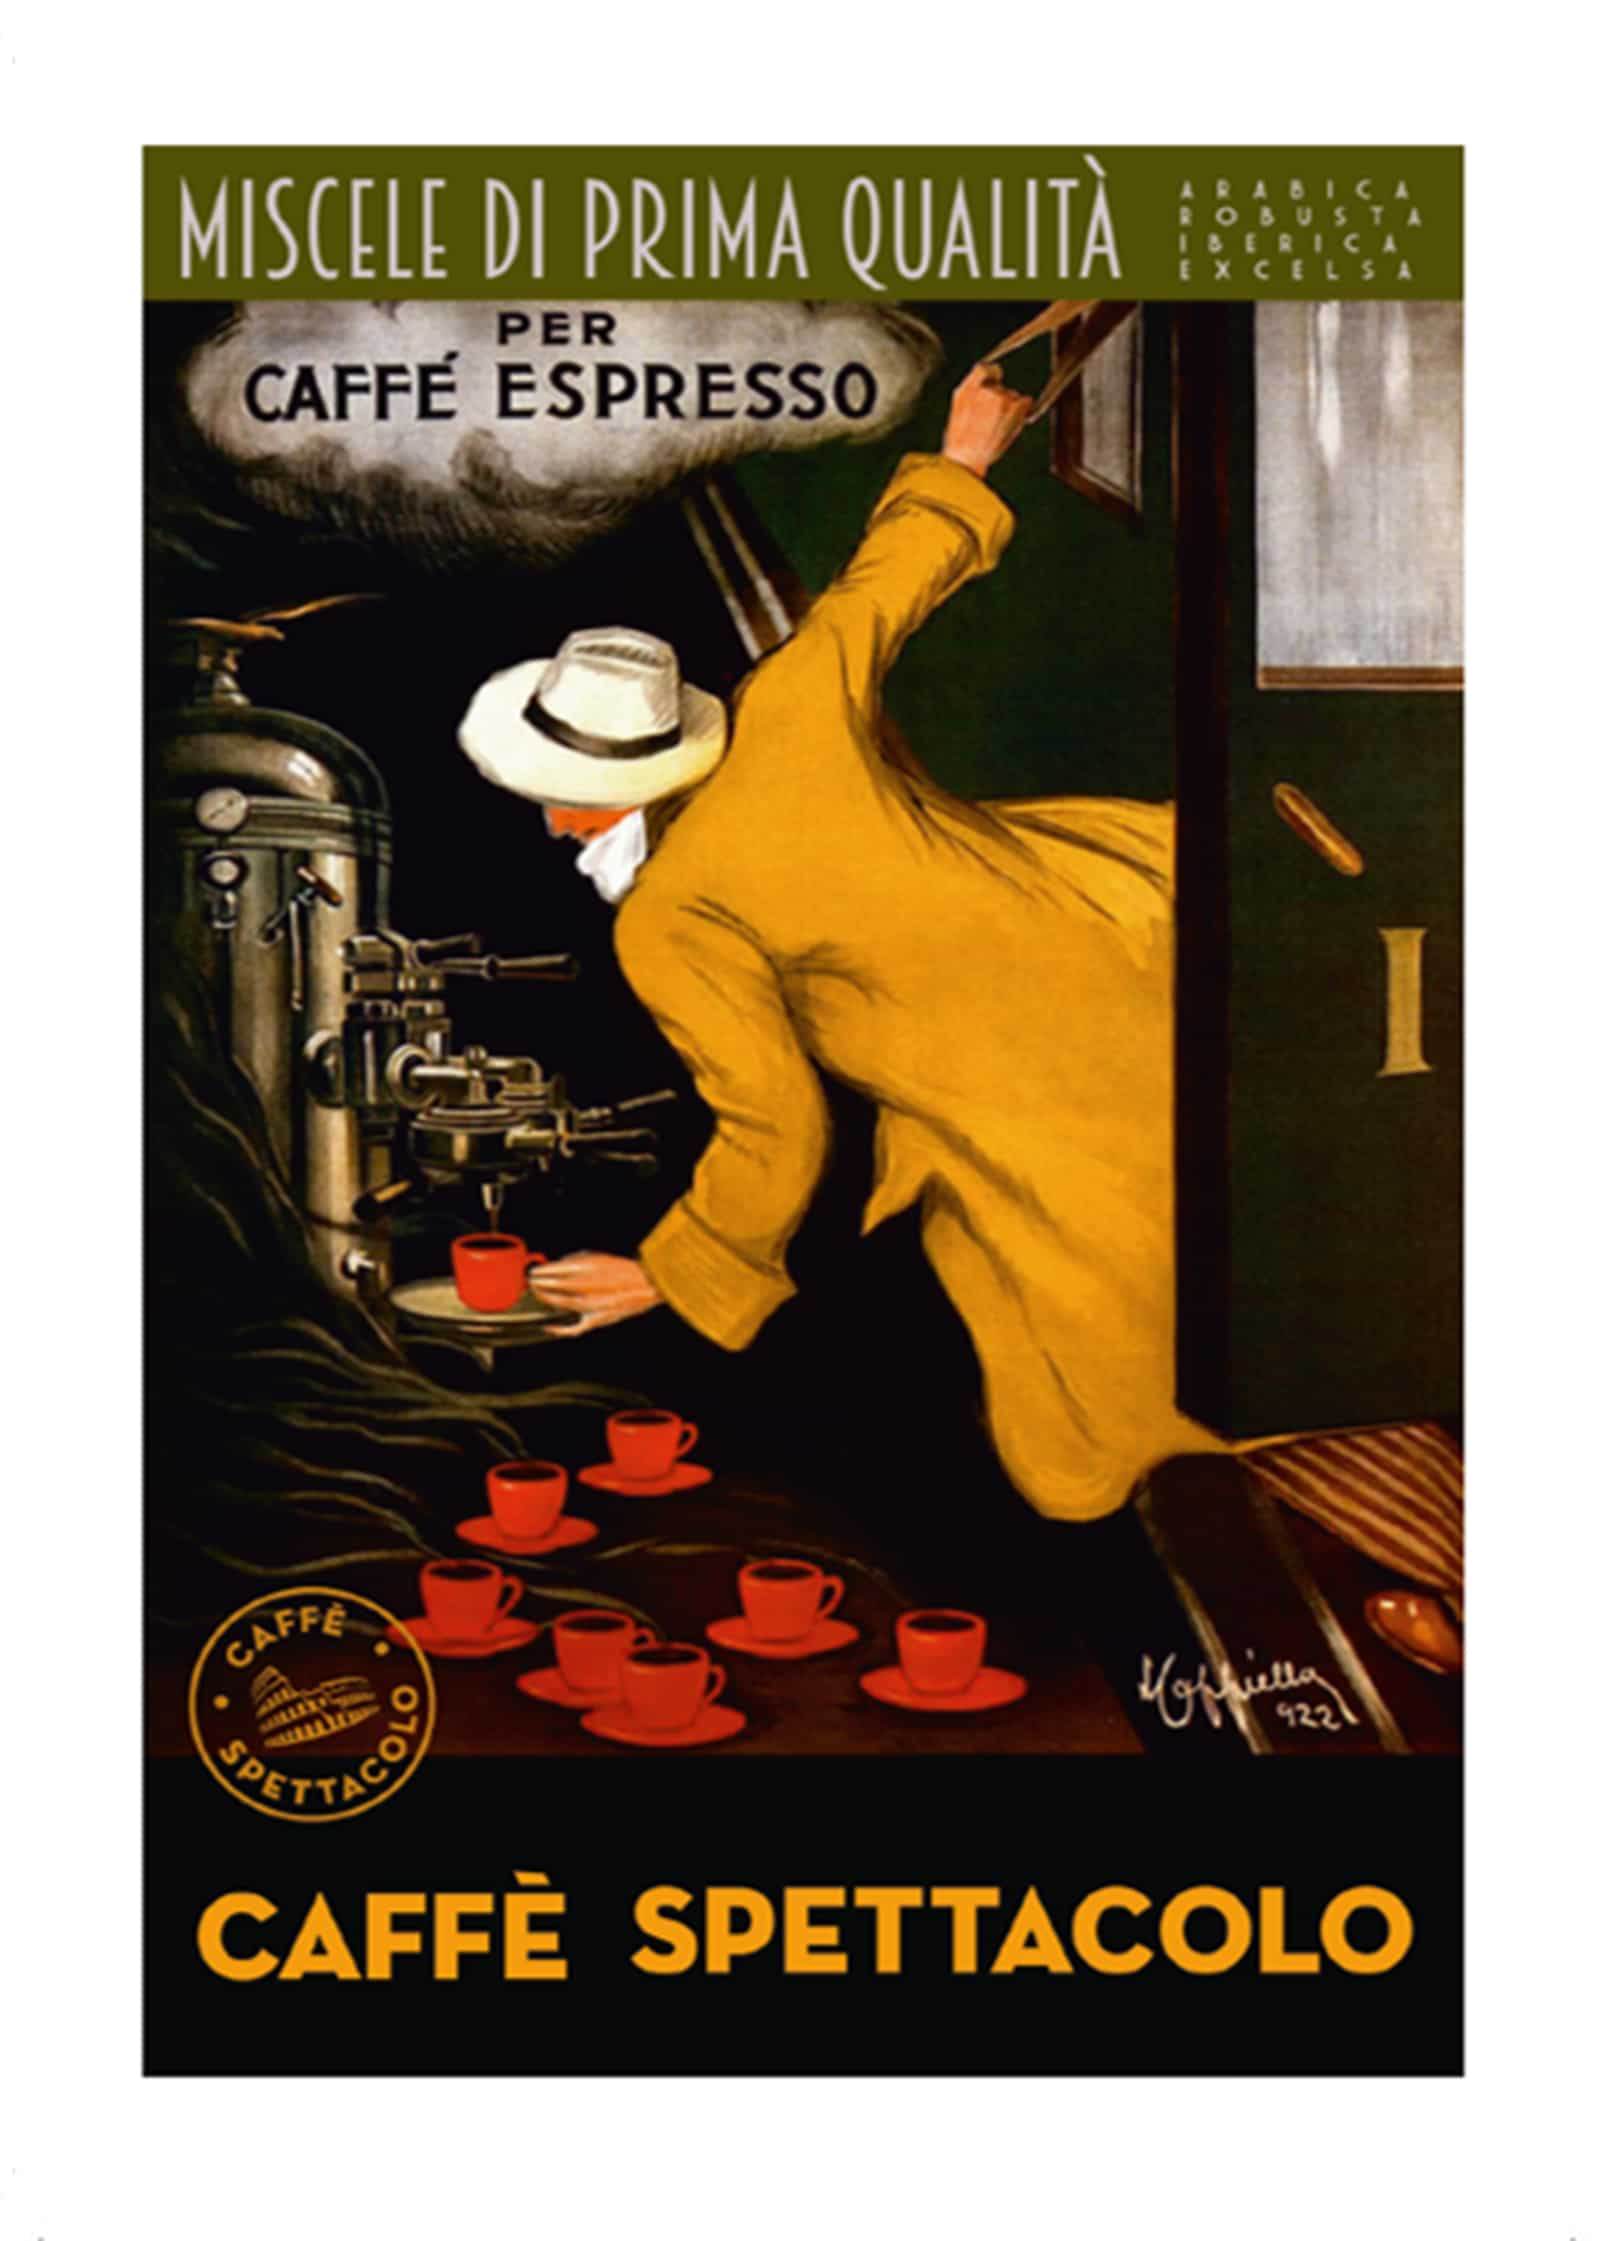 Anniversary promotion: Caffè Spettacolo thanks its guests with pre-paid postcards and a range of coffee vouchers.